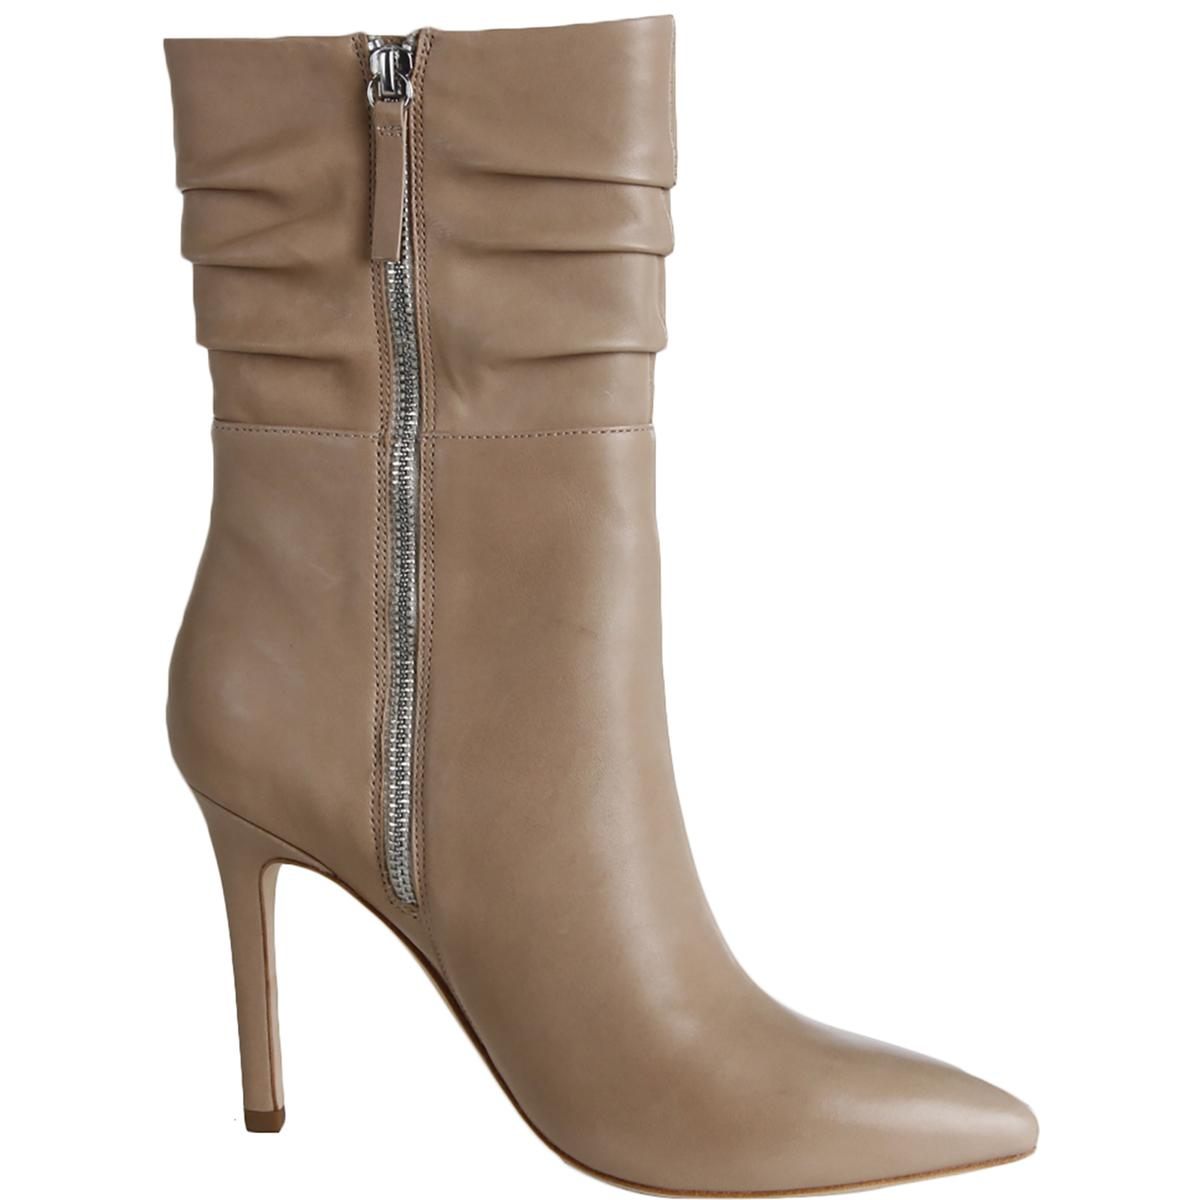 Halston-Heritage-Womens-Heather-Leather-Heels-Mid-Calf-Boots-Shoes-BHFO-1702 thumbnail 8